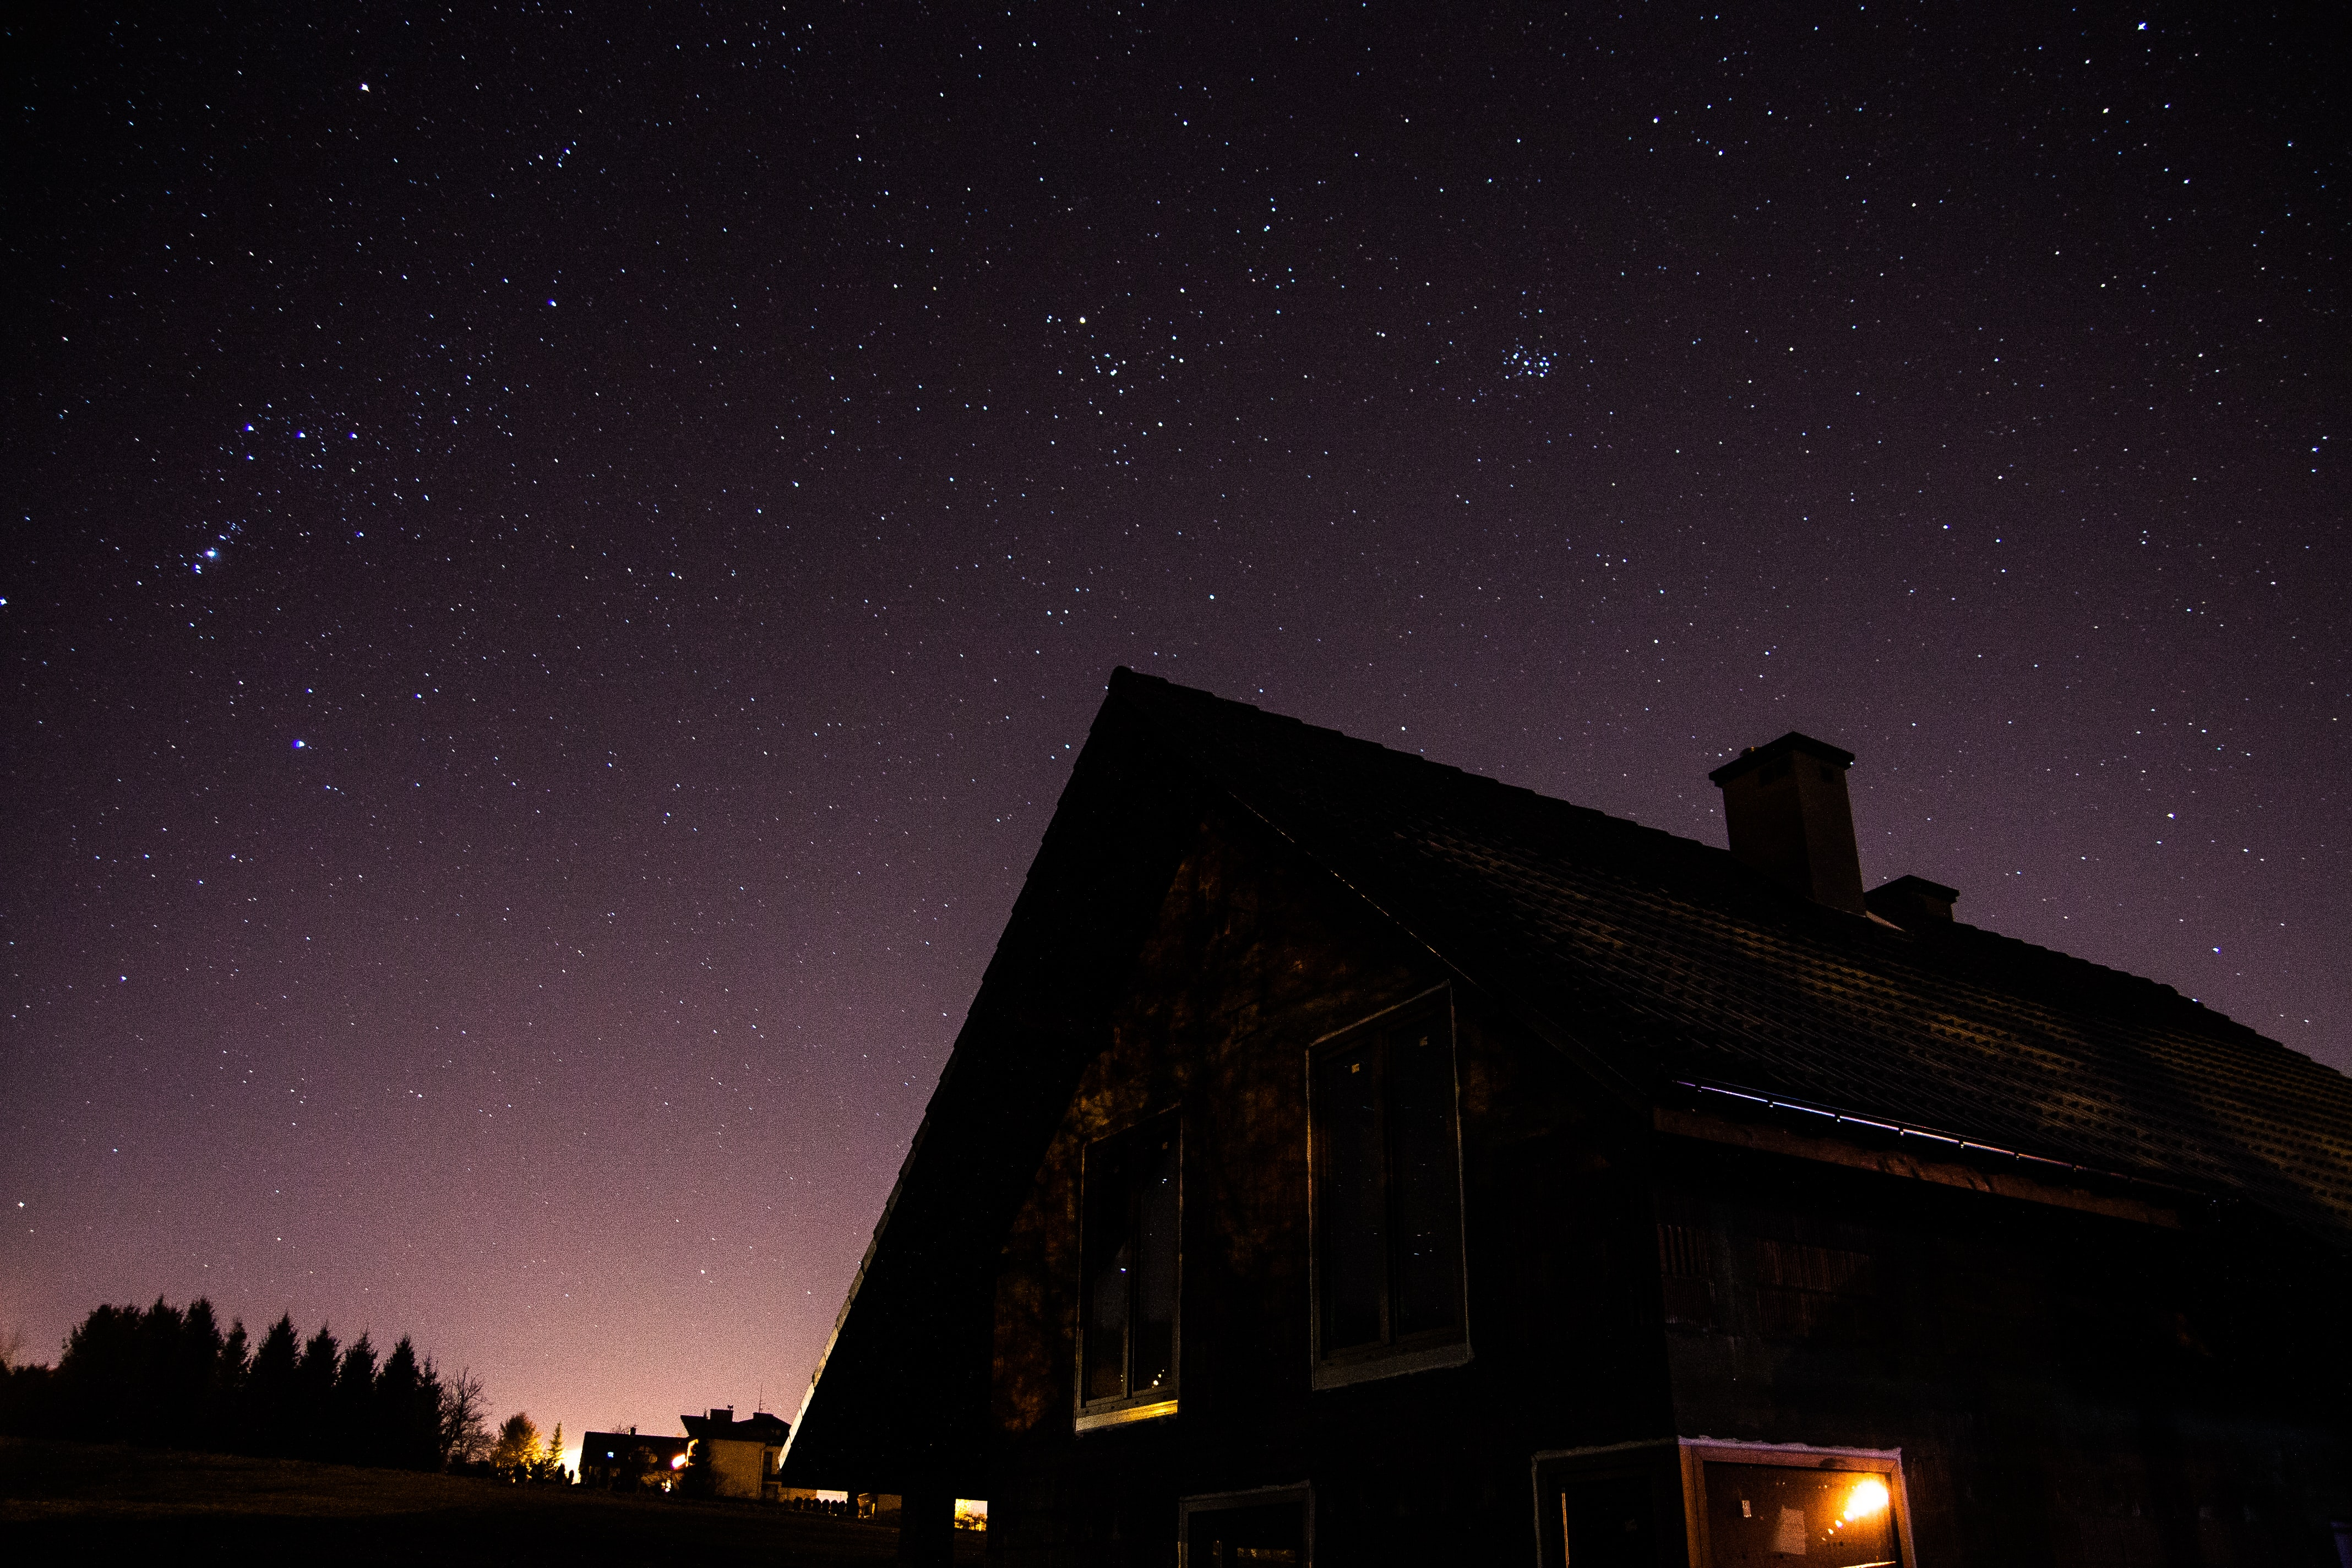 Silhouette of a house at night with stars in a dark sky